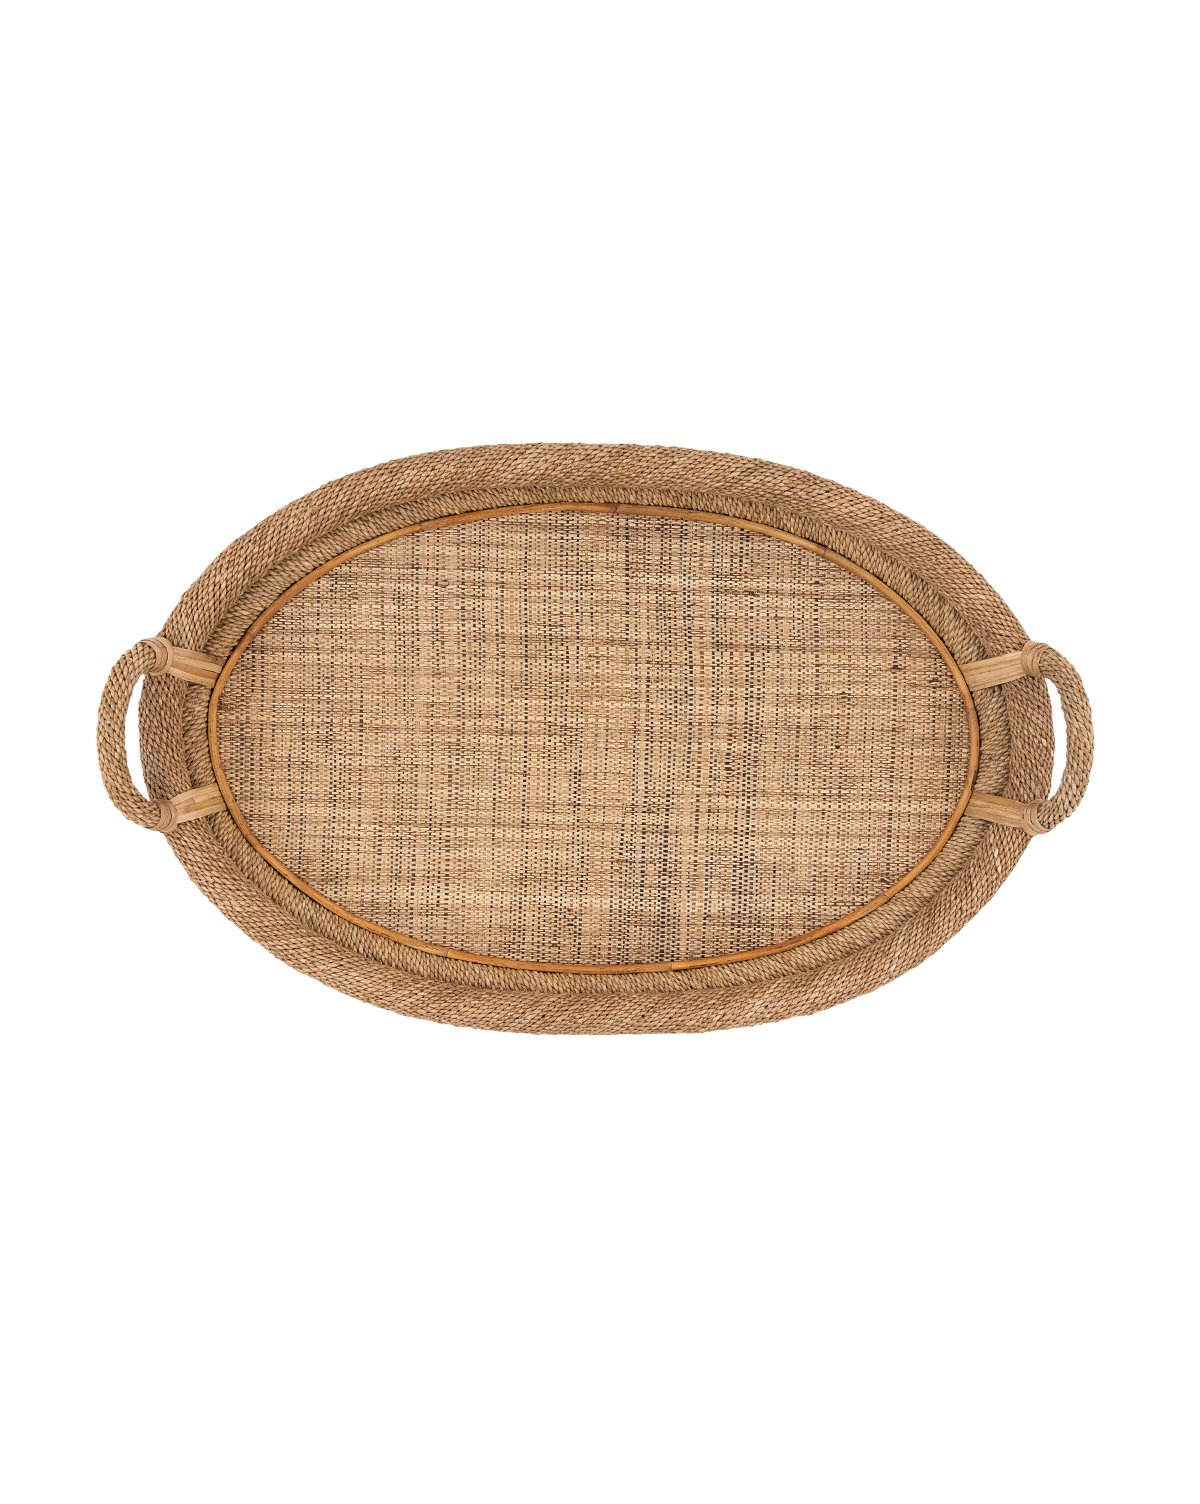 Cane_Rope_Oval_Tray1.jpg